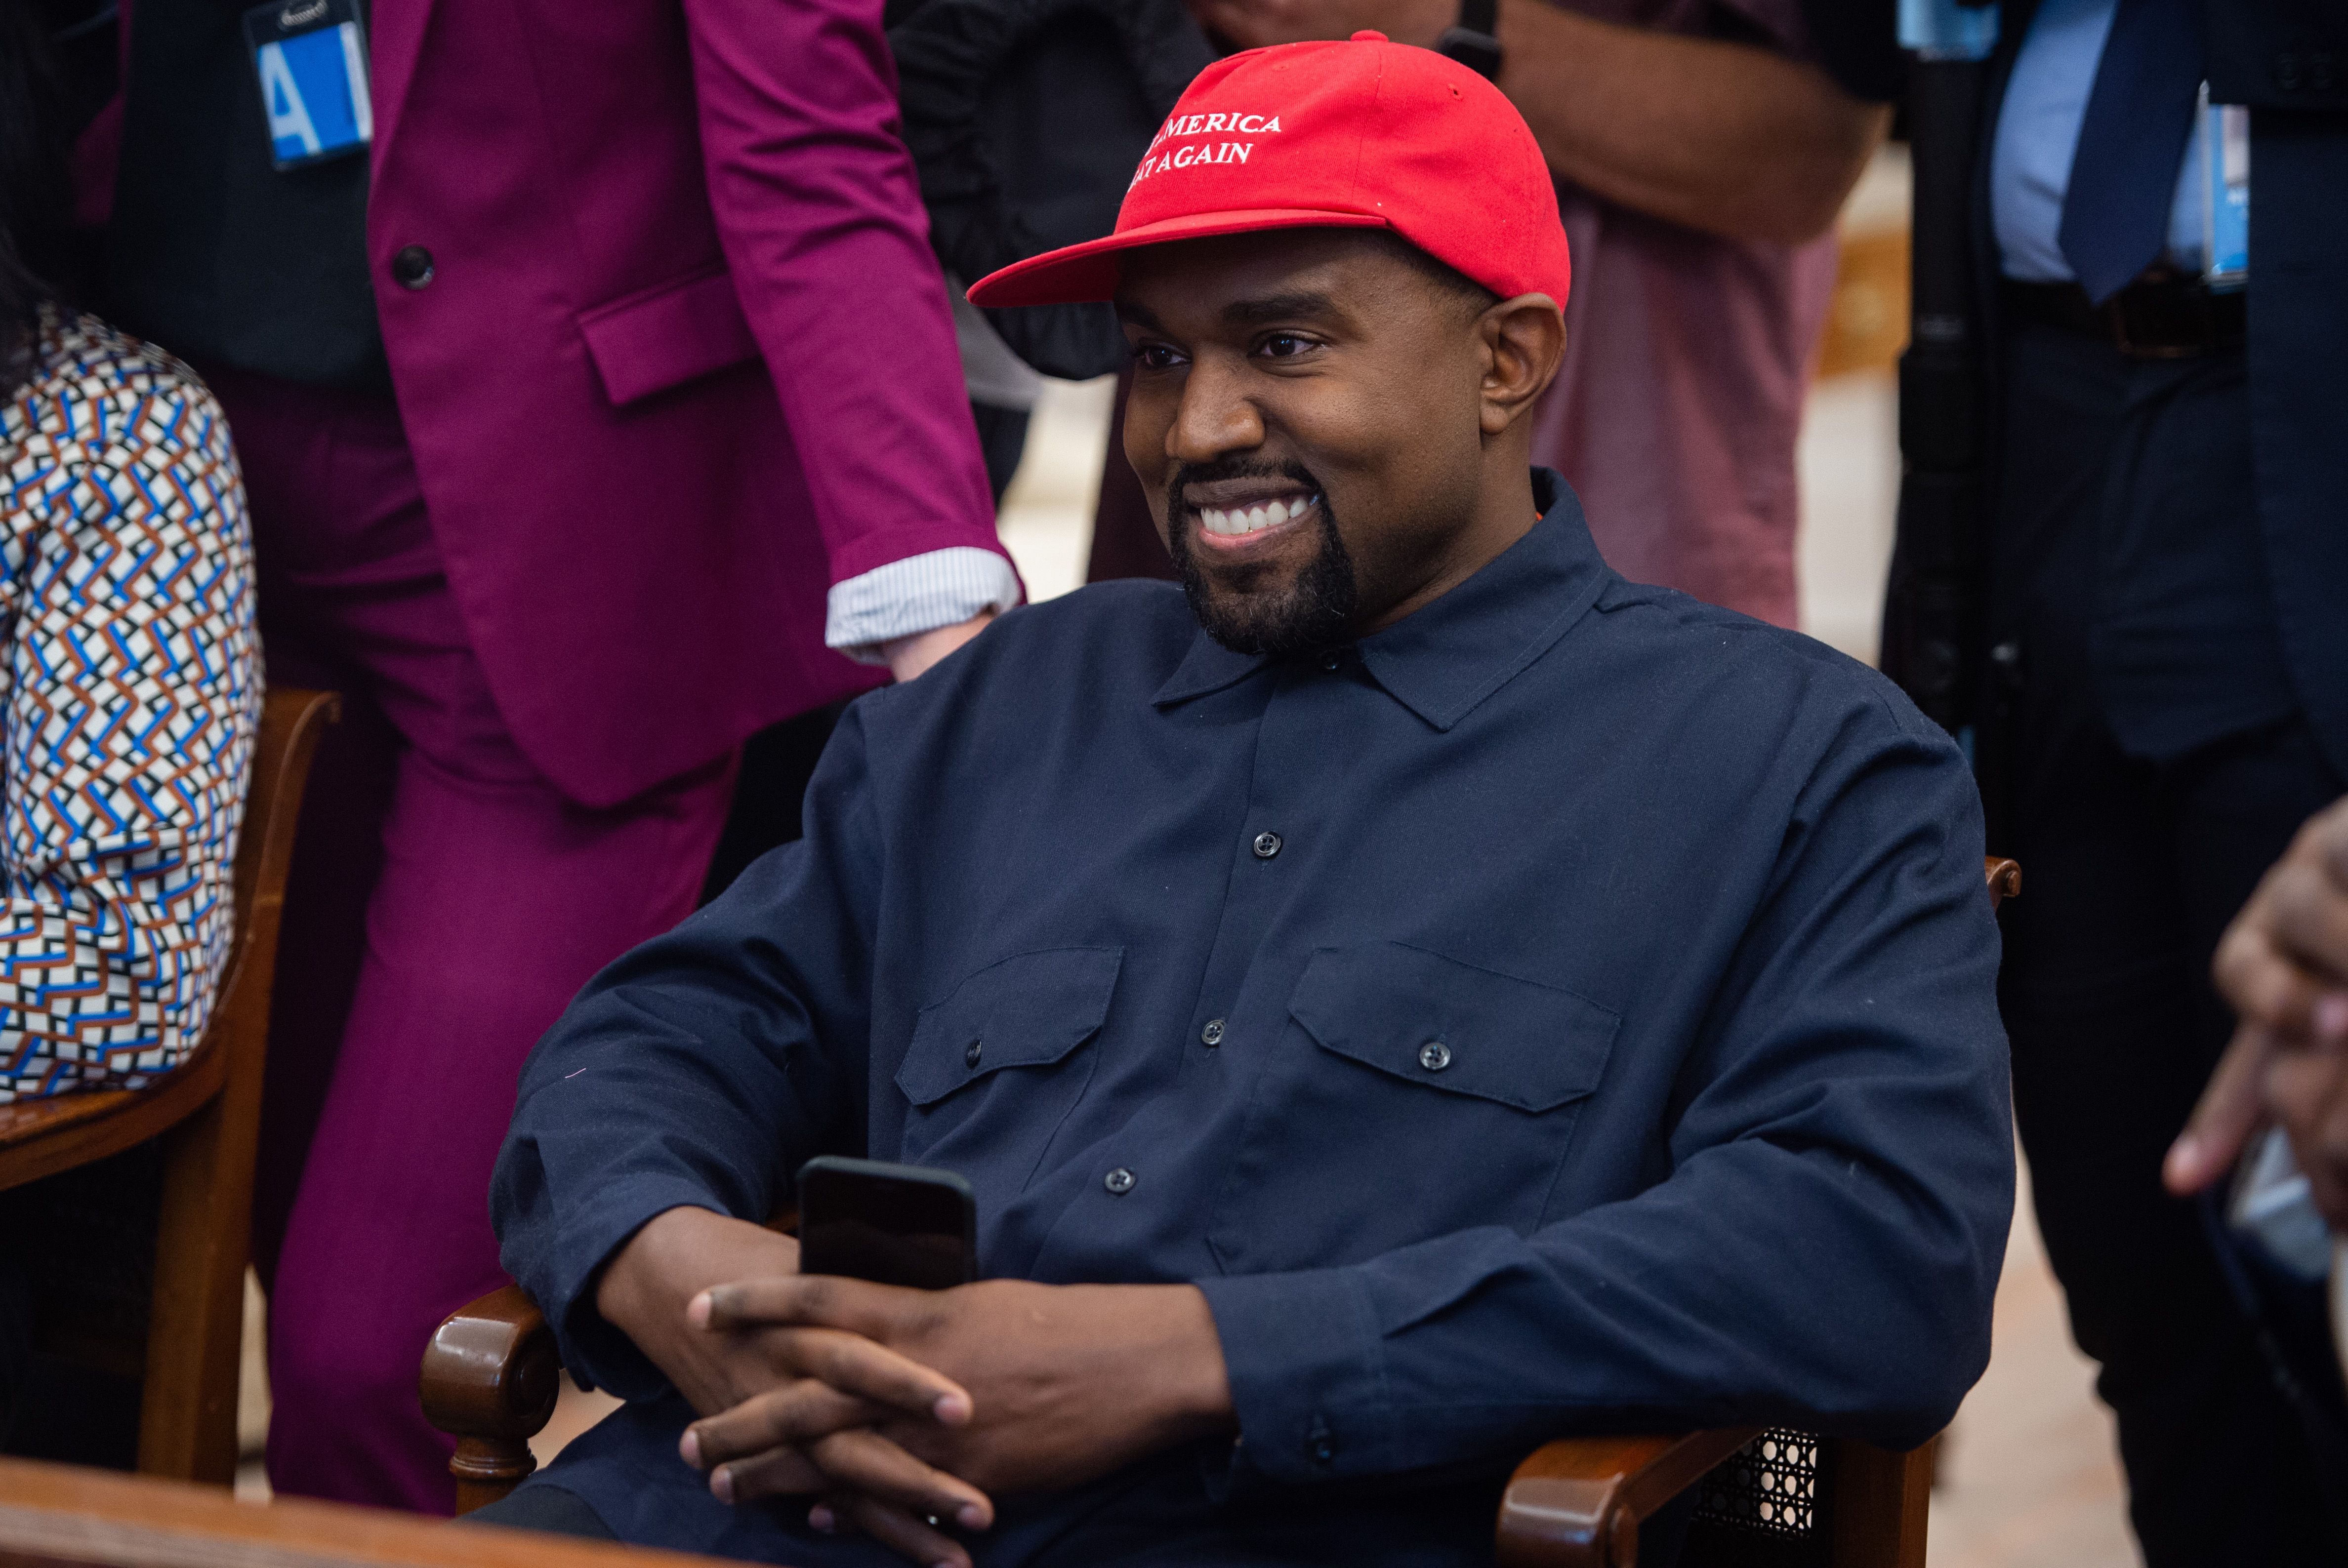 Rapper Kanye West speaks during his meeting with US President Donald Trump in the Oval Office of the White House in Washington, DC, on October 11, 2018. (SAUL LOEB/AFP/Getty Images)